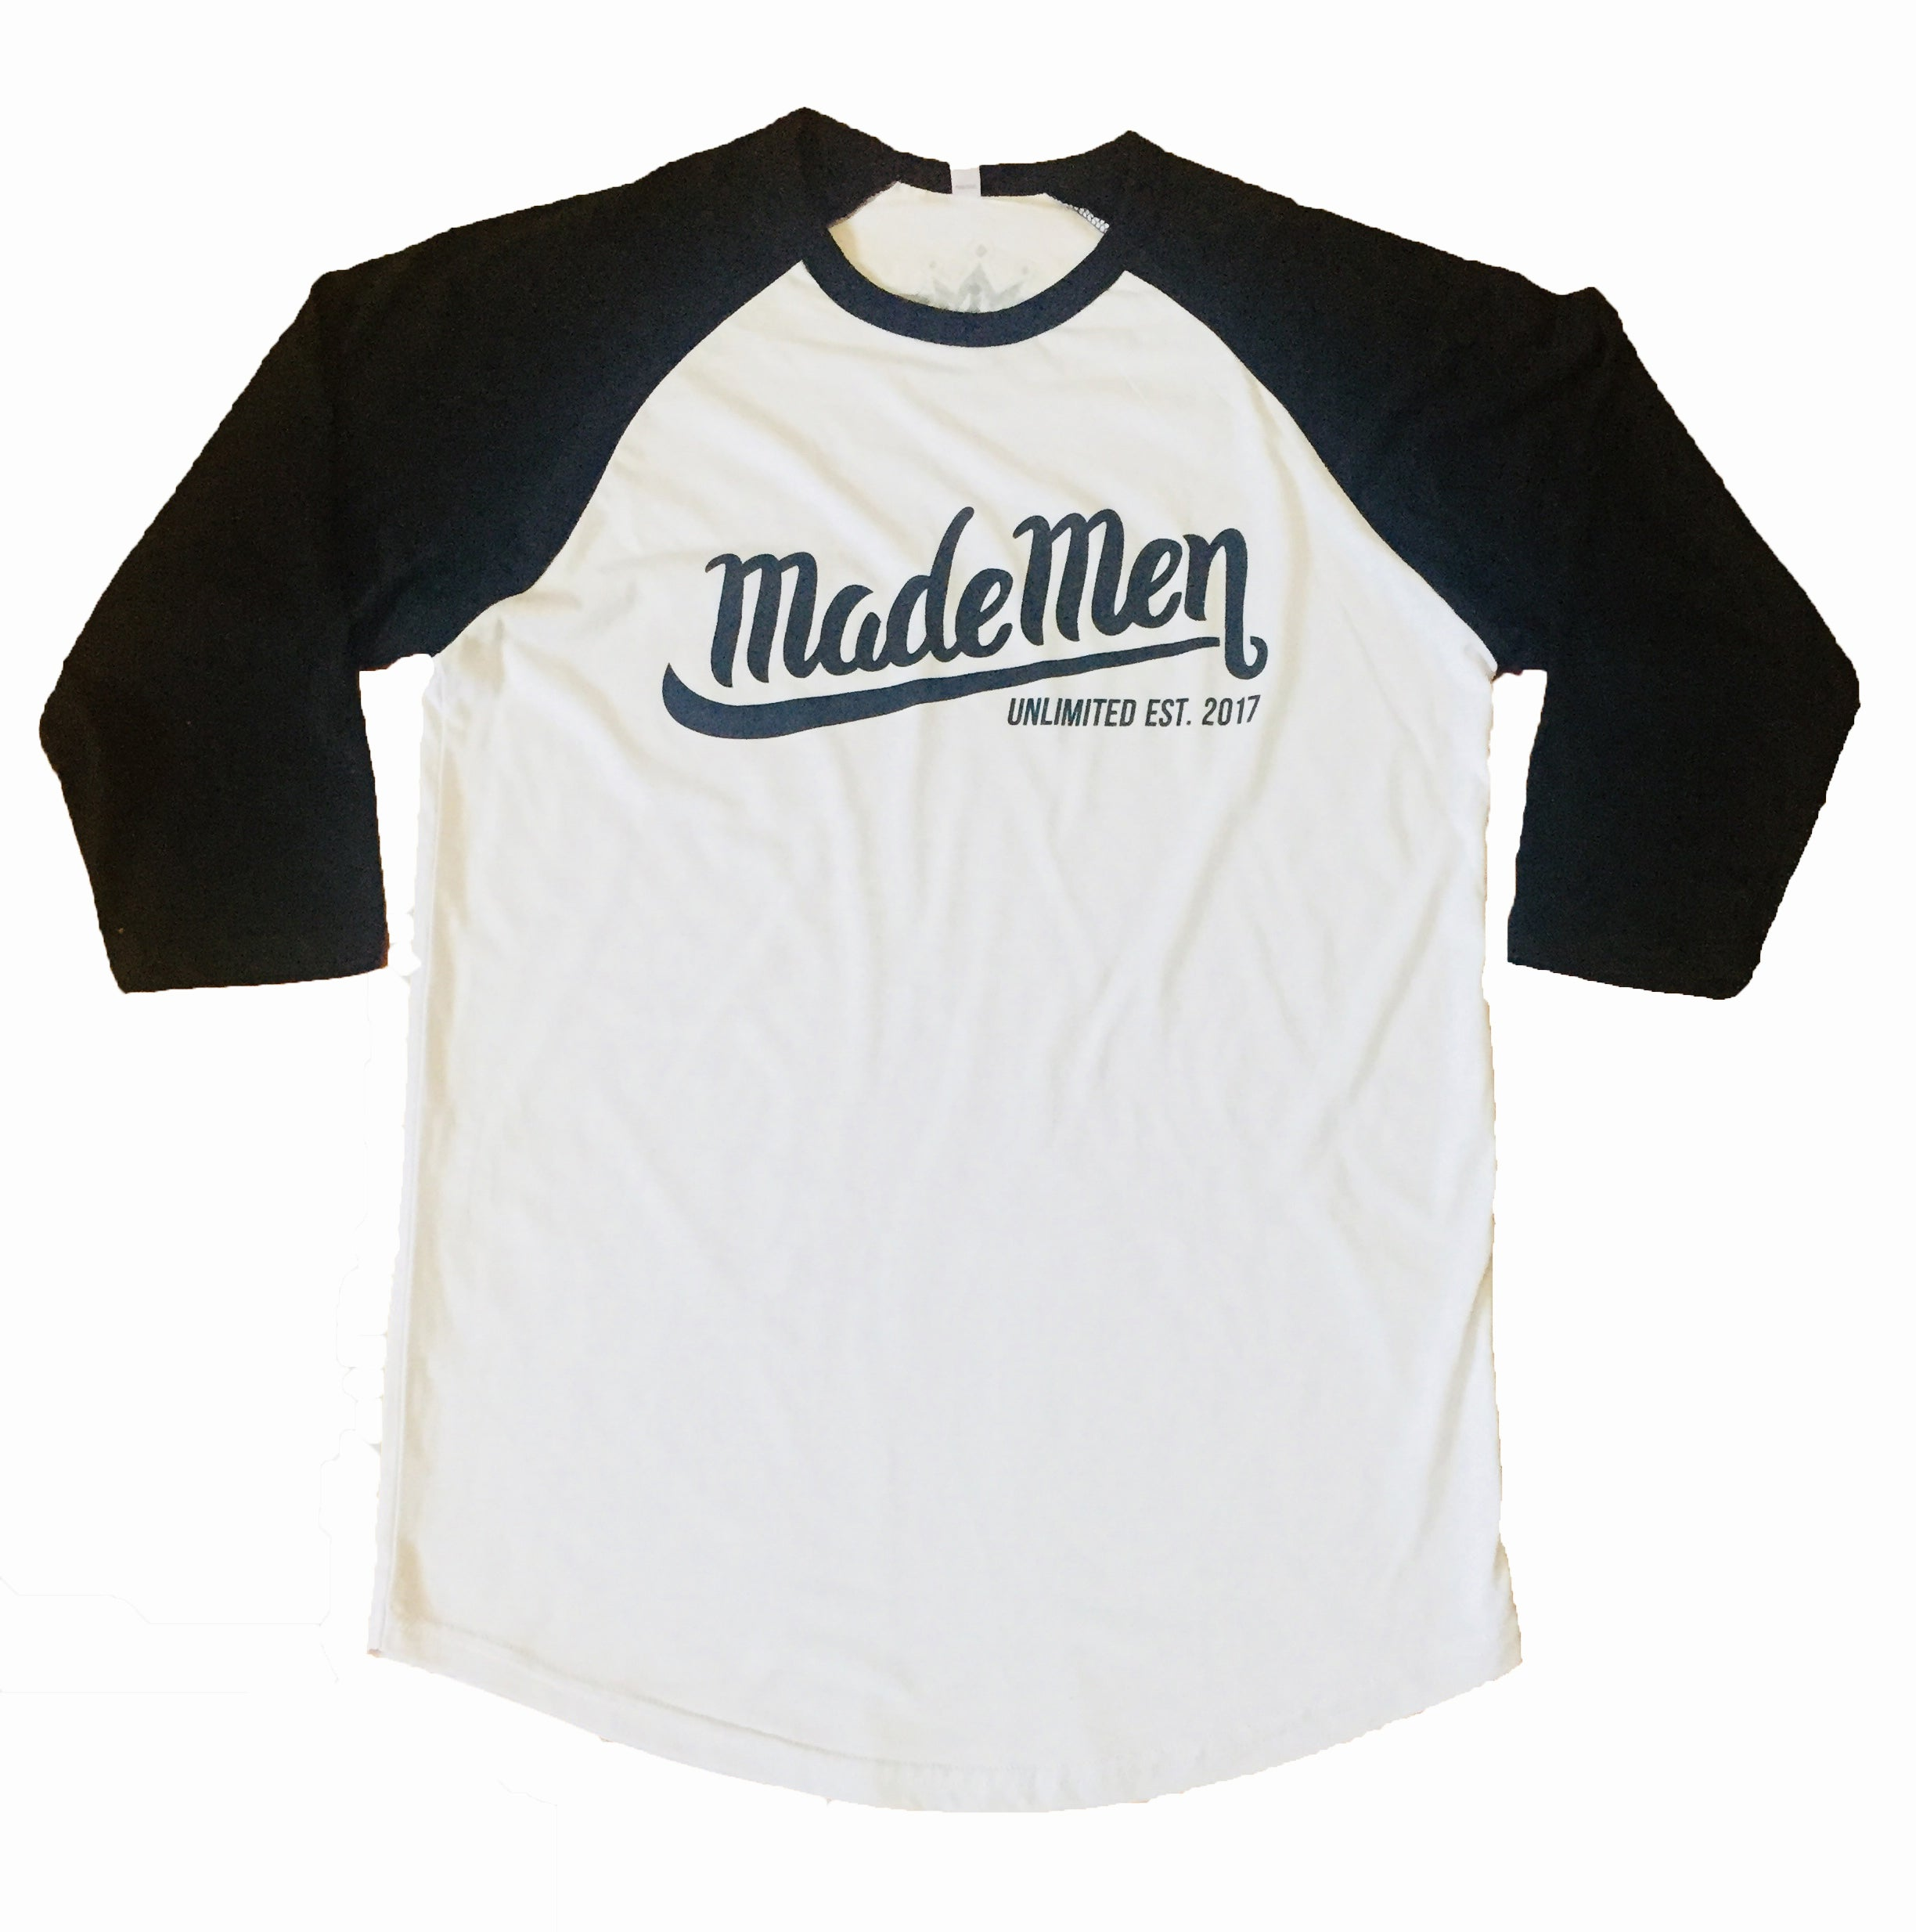 Made Men Unlimited Baseball Tee